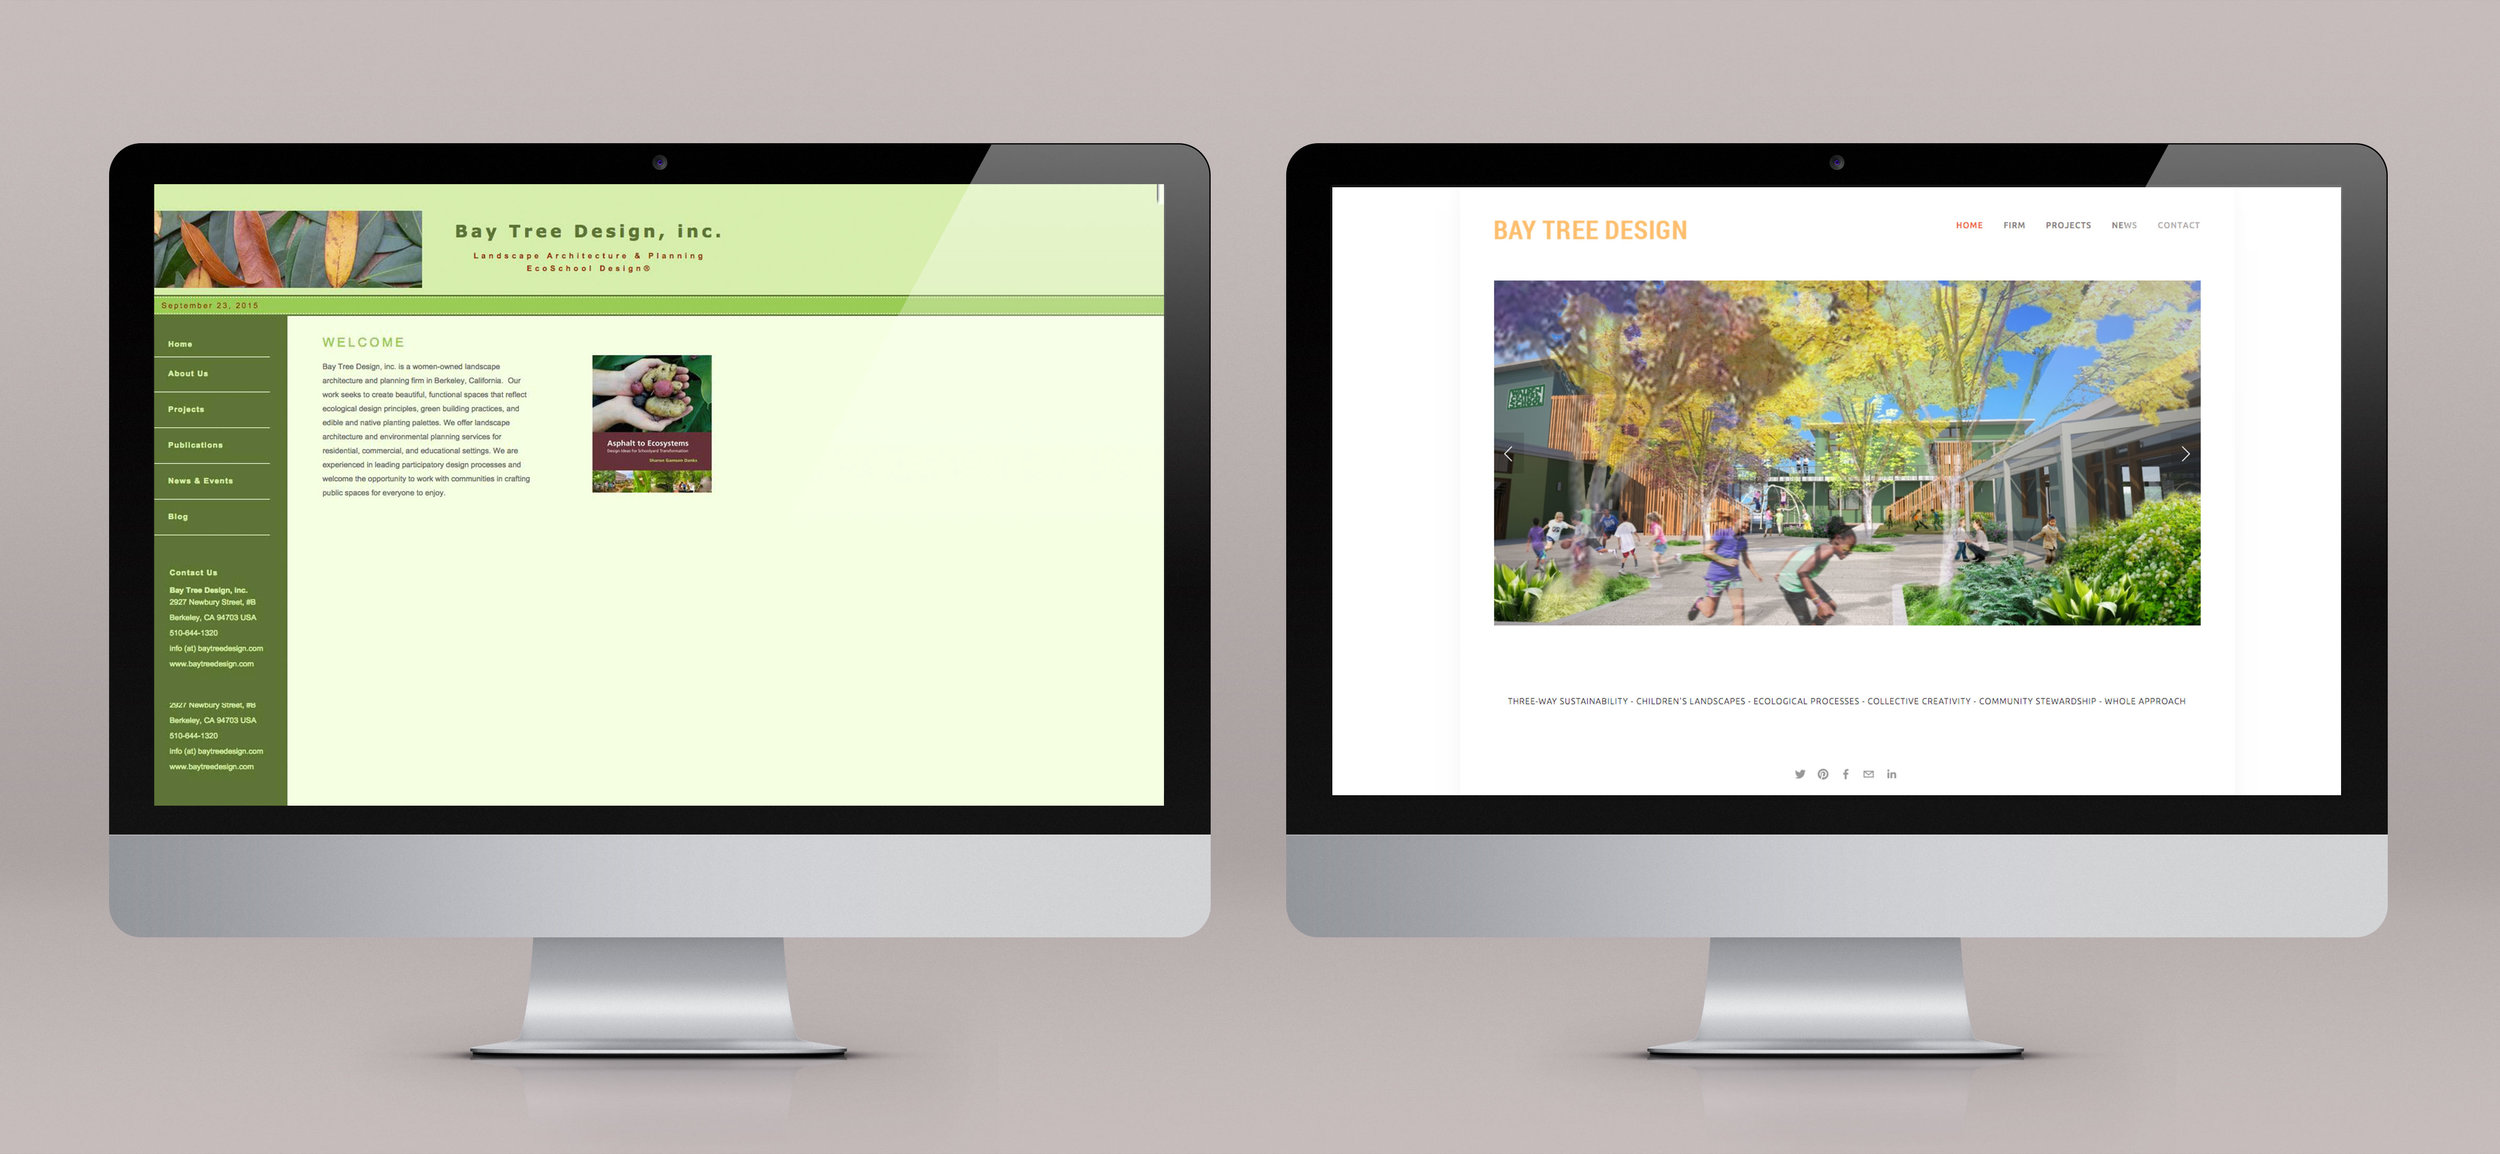 Bay Tree Design Before and After Website